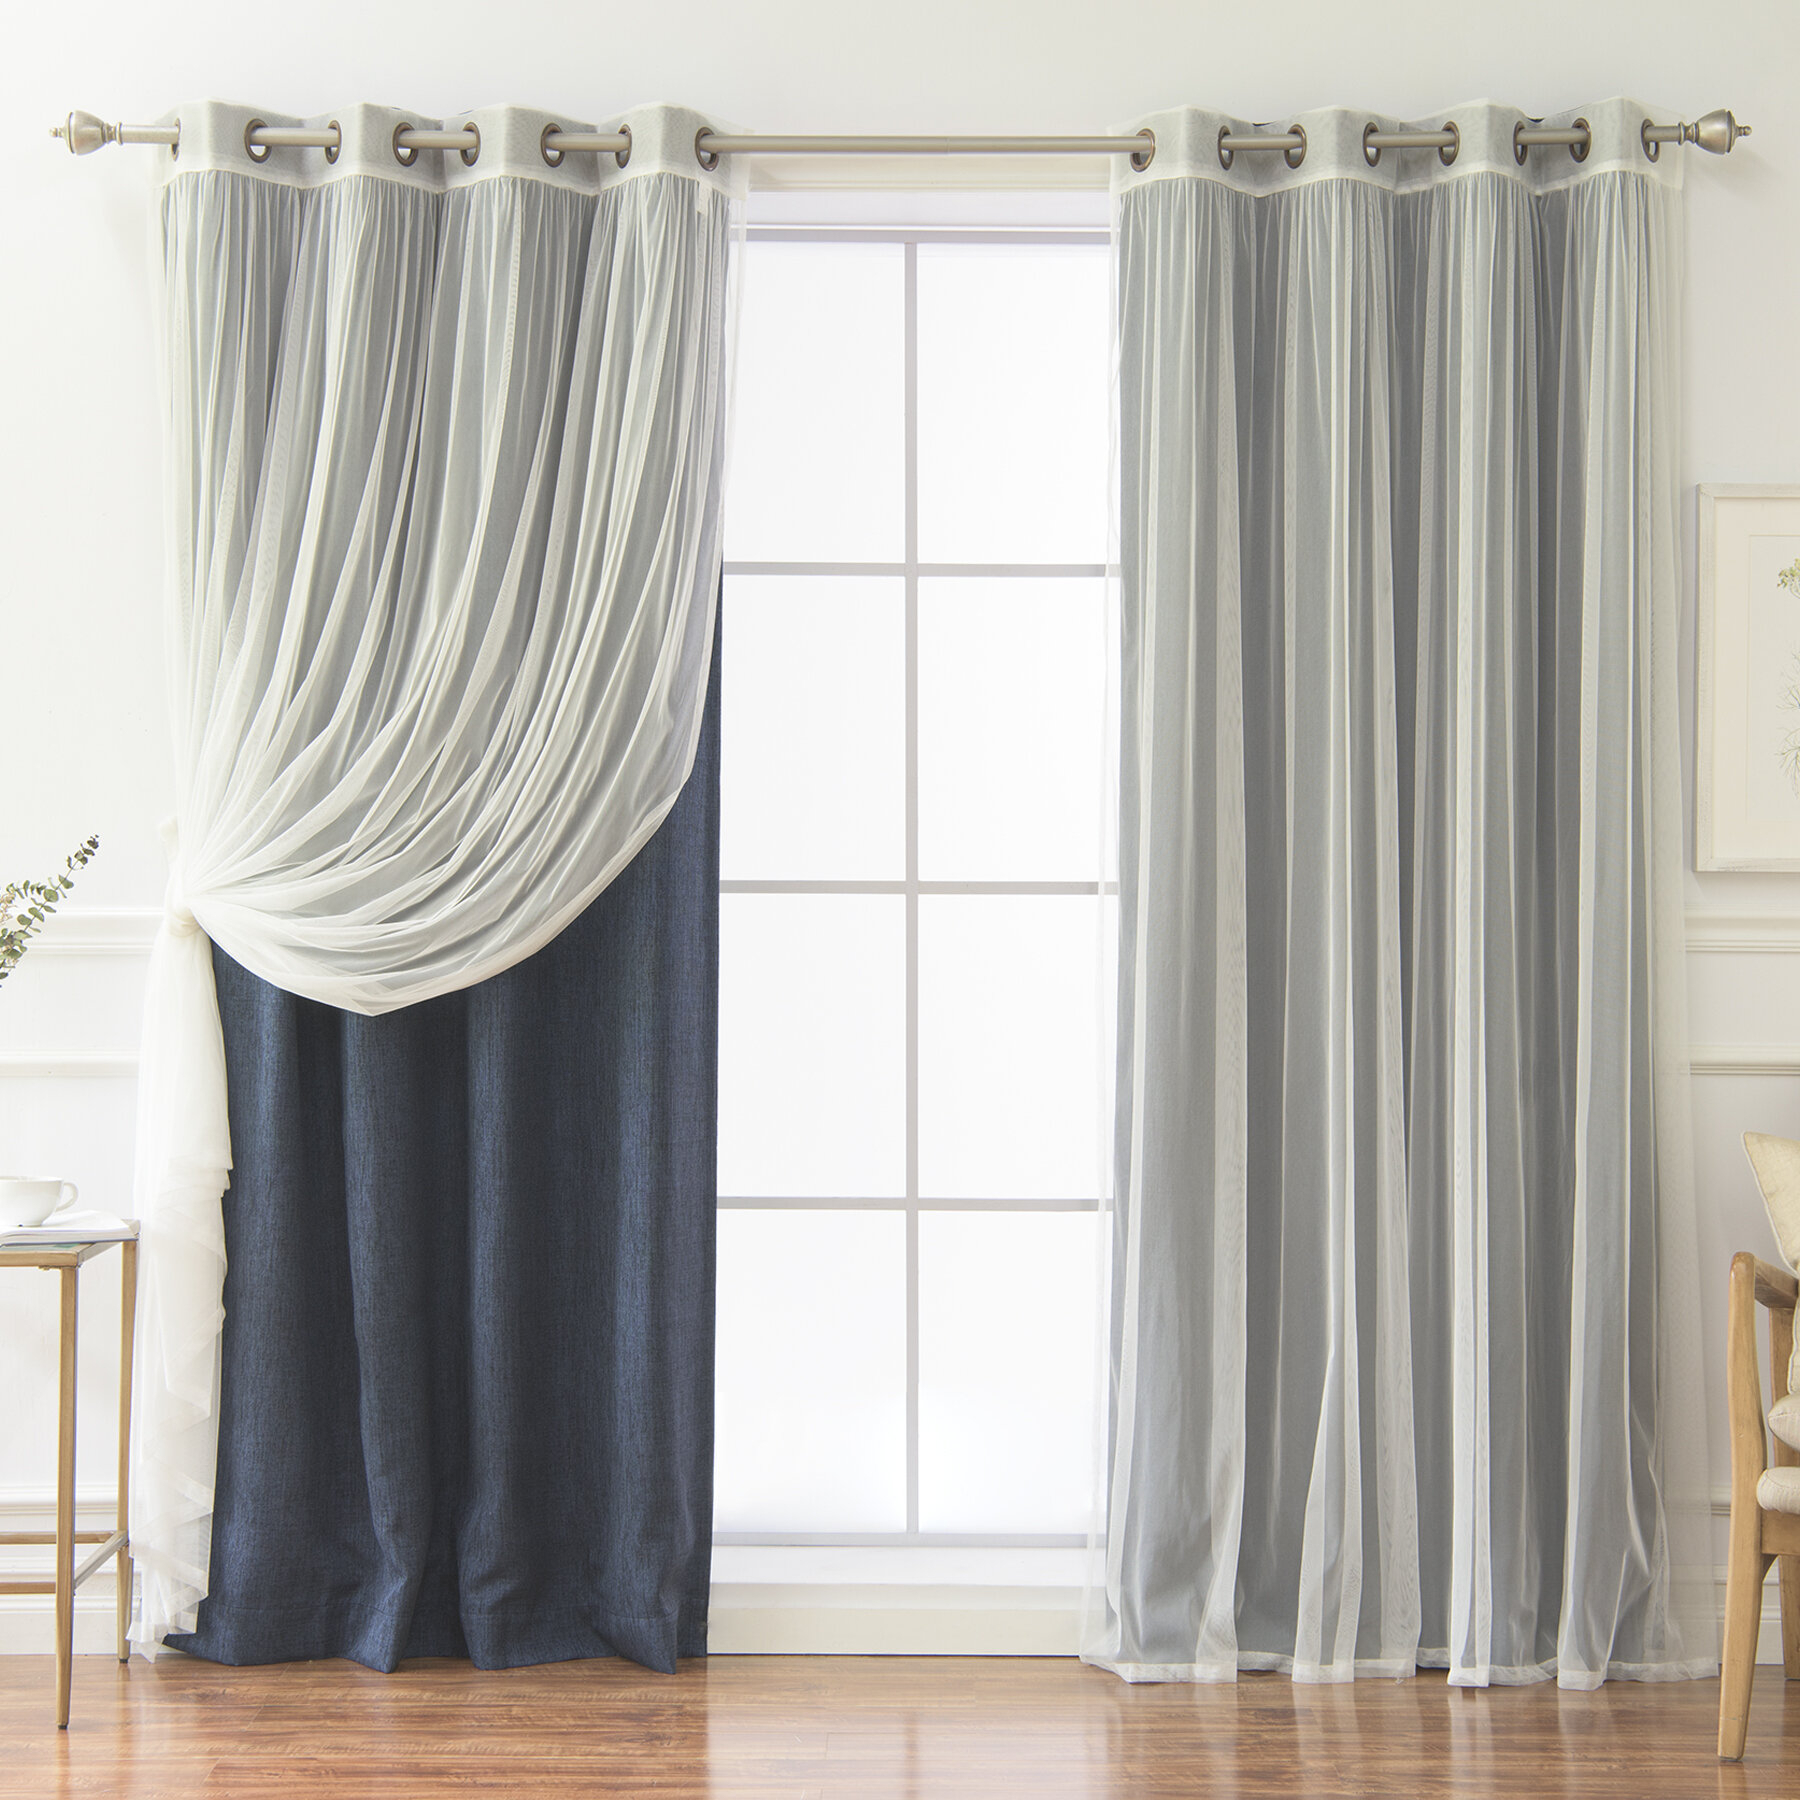 Vestal Tulle And Heathered Solid Blackout Thermal Grommet Curtain Panels Inside Tulle Sheer With Attached Valance And Blackout 4 Piece Curtain Panel Pairs (View 15 of 30)